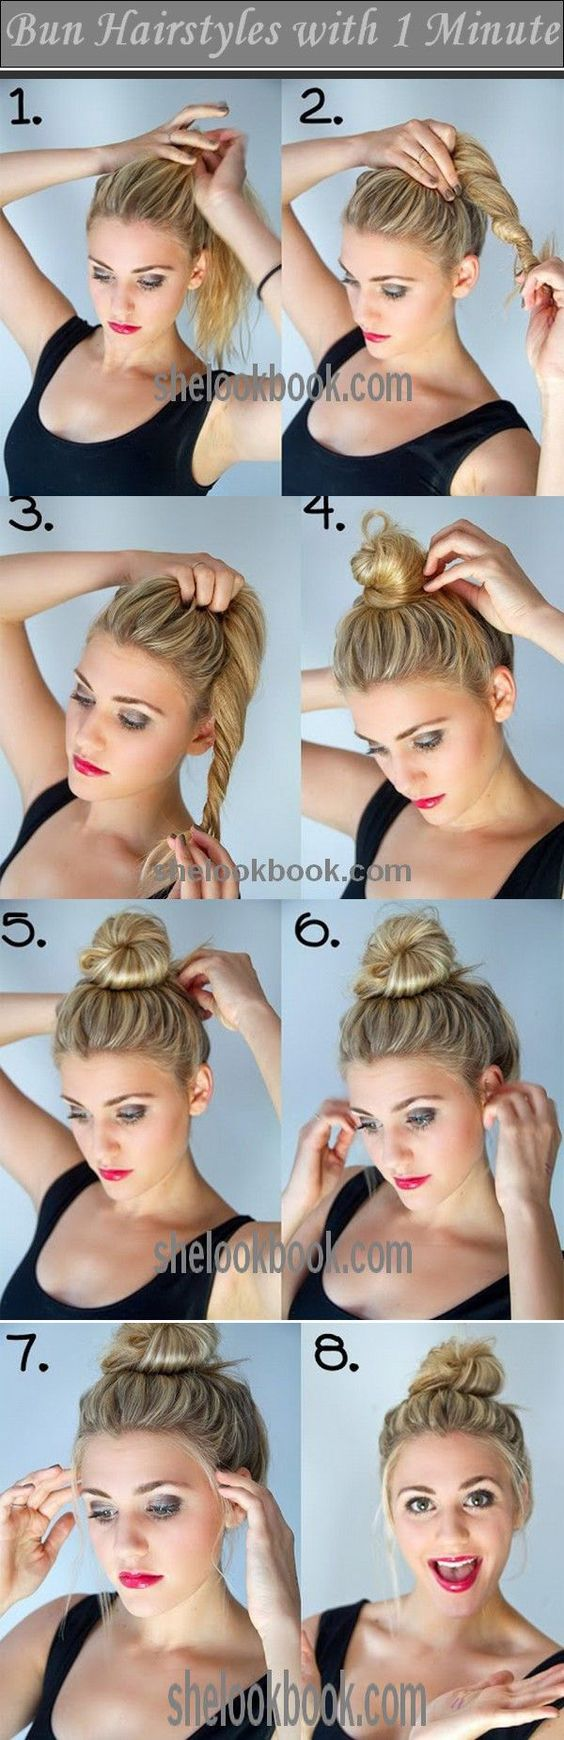 best images about easy hairstyles on pinterest